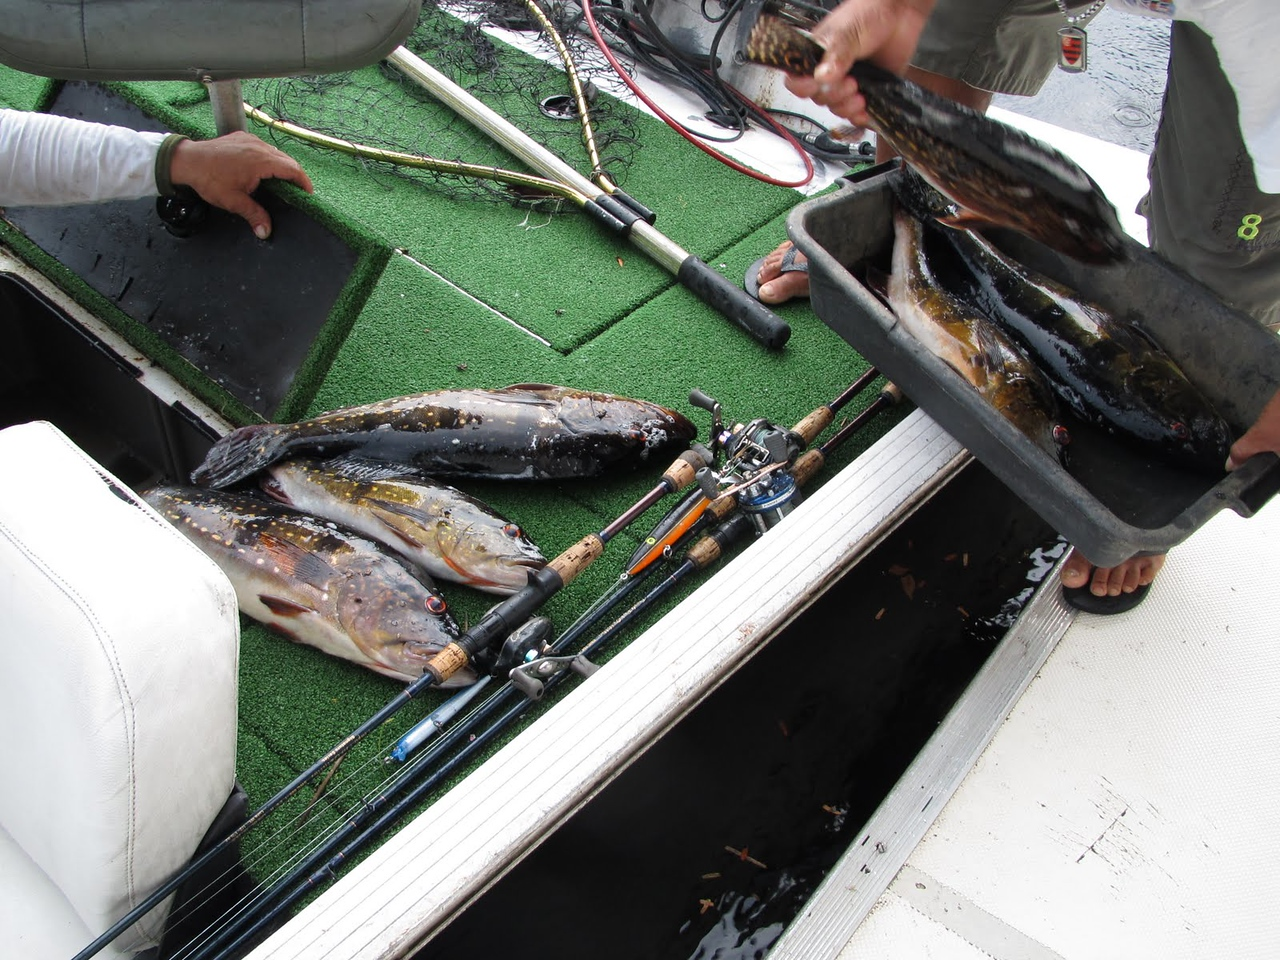 Bringing our catch aboard for dinner